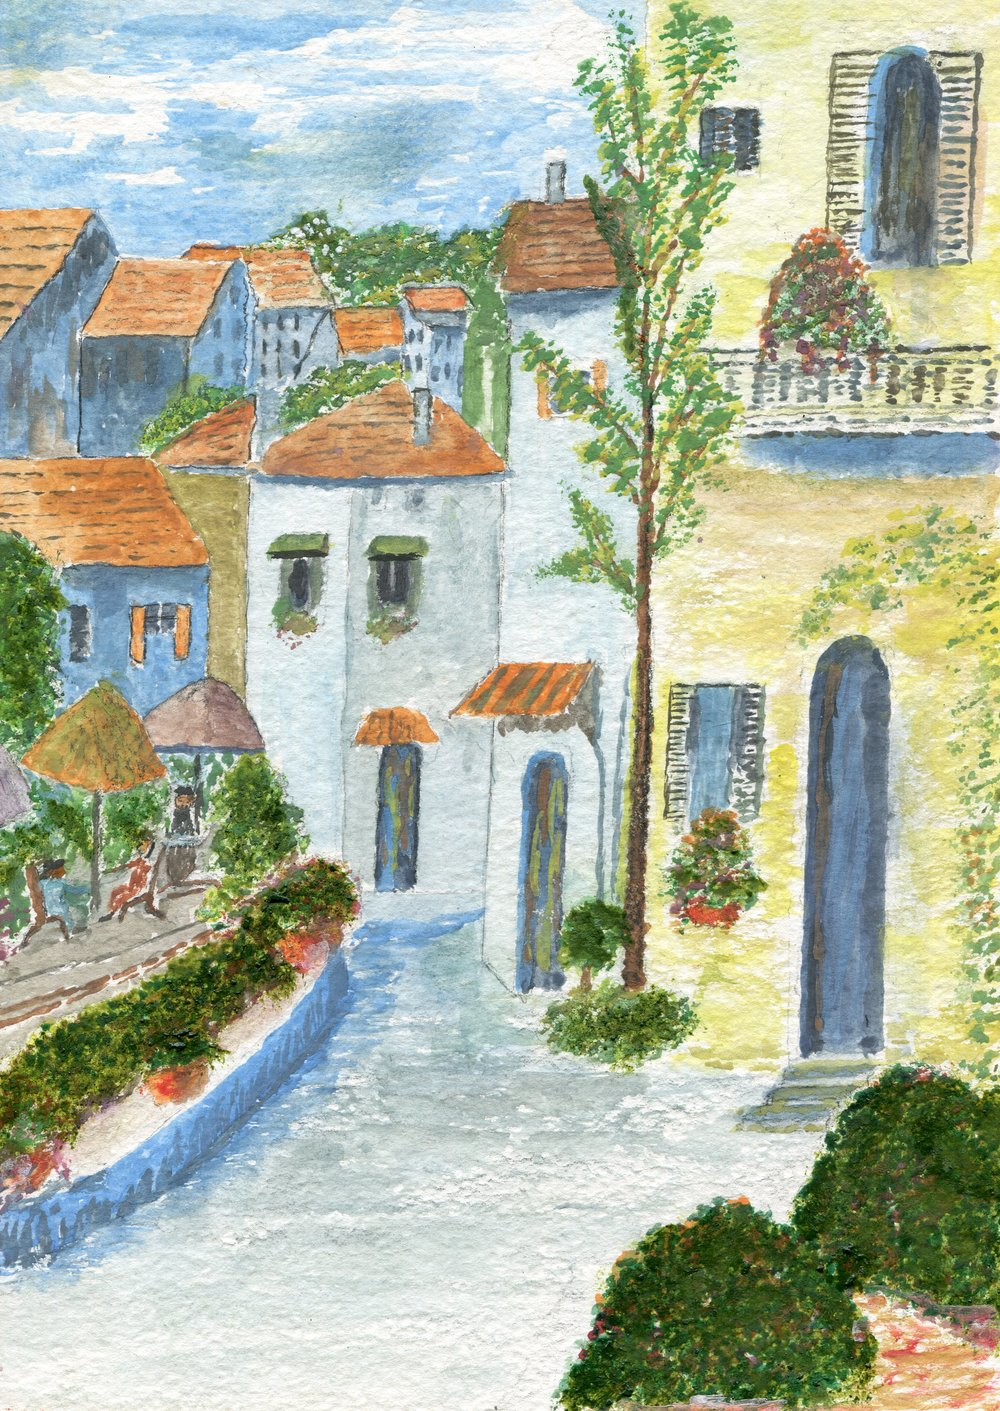 46a  Chris Lake  Algarve village street, Portugal  watercolour on paper